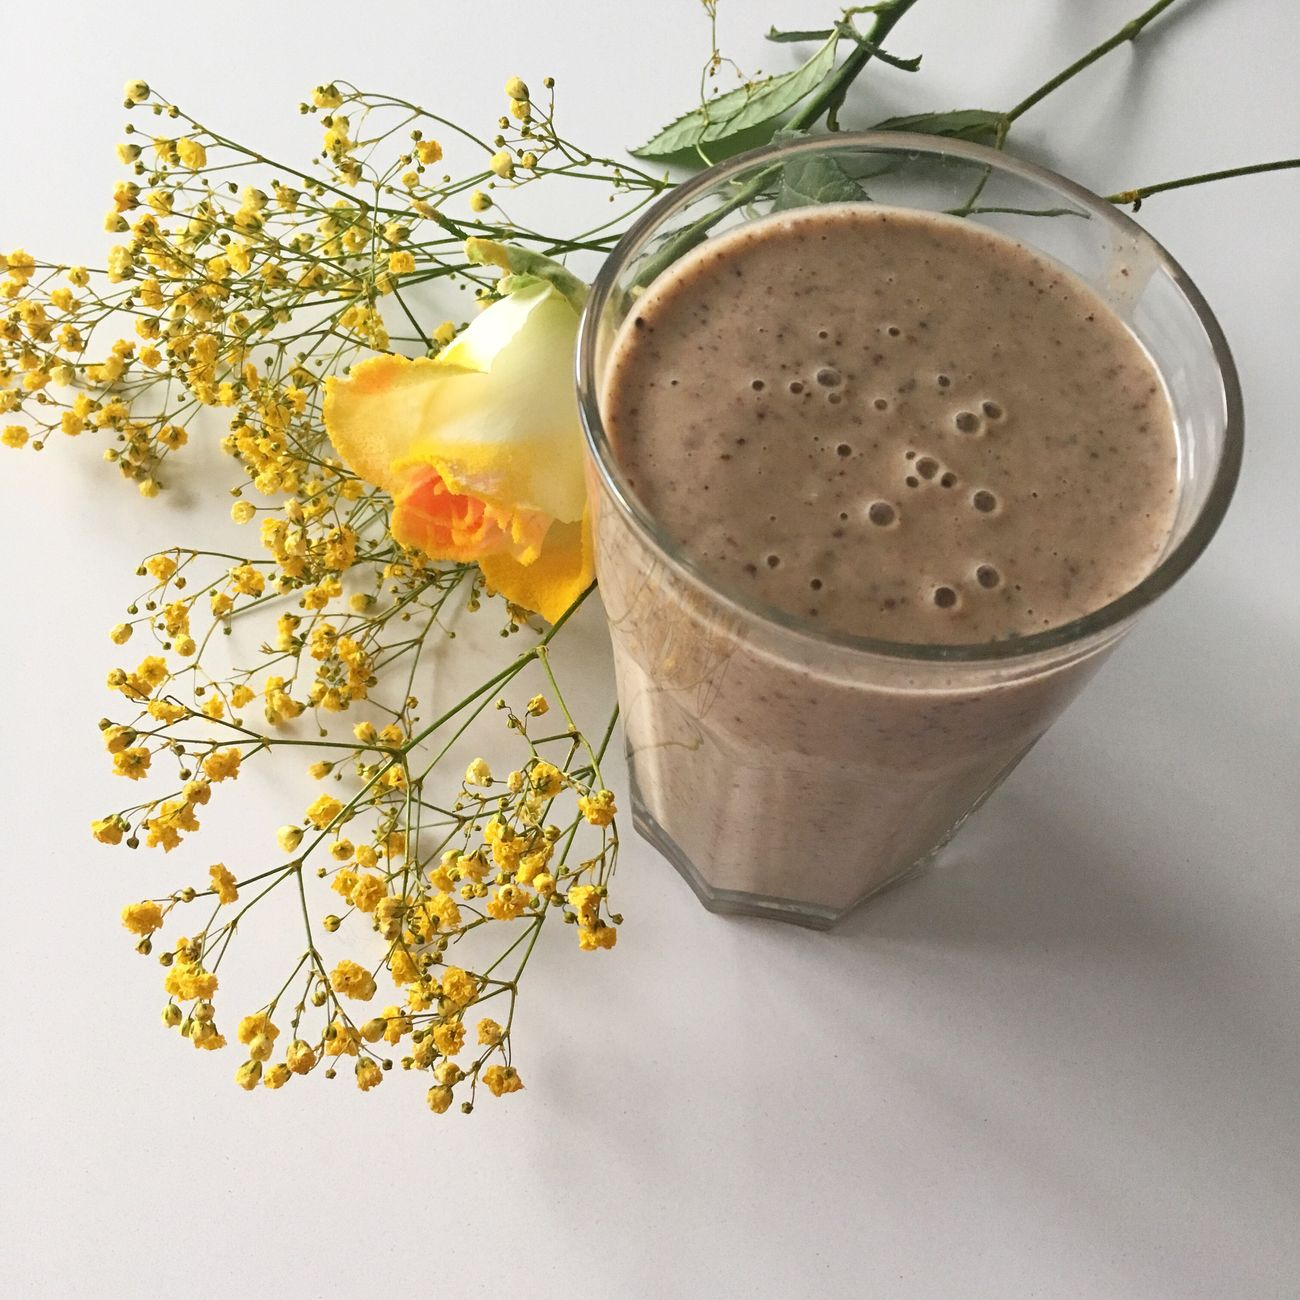 Energyshake in the morning Shakes Cocoanibs Flower Yellow Healty Delicious